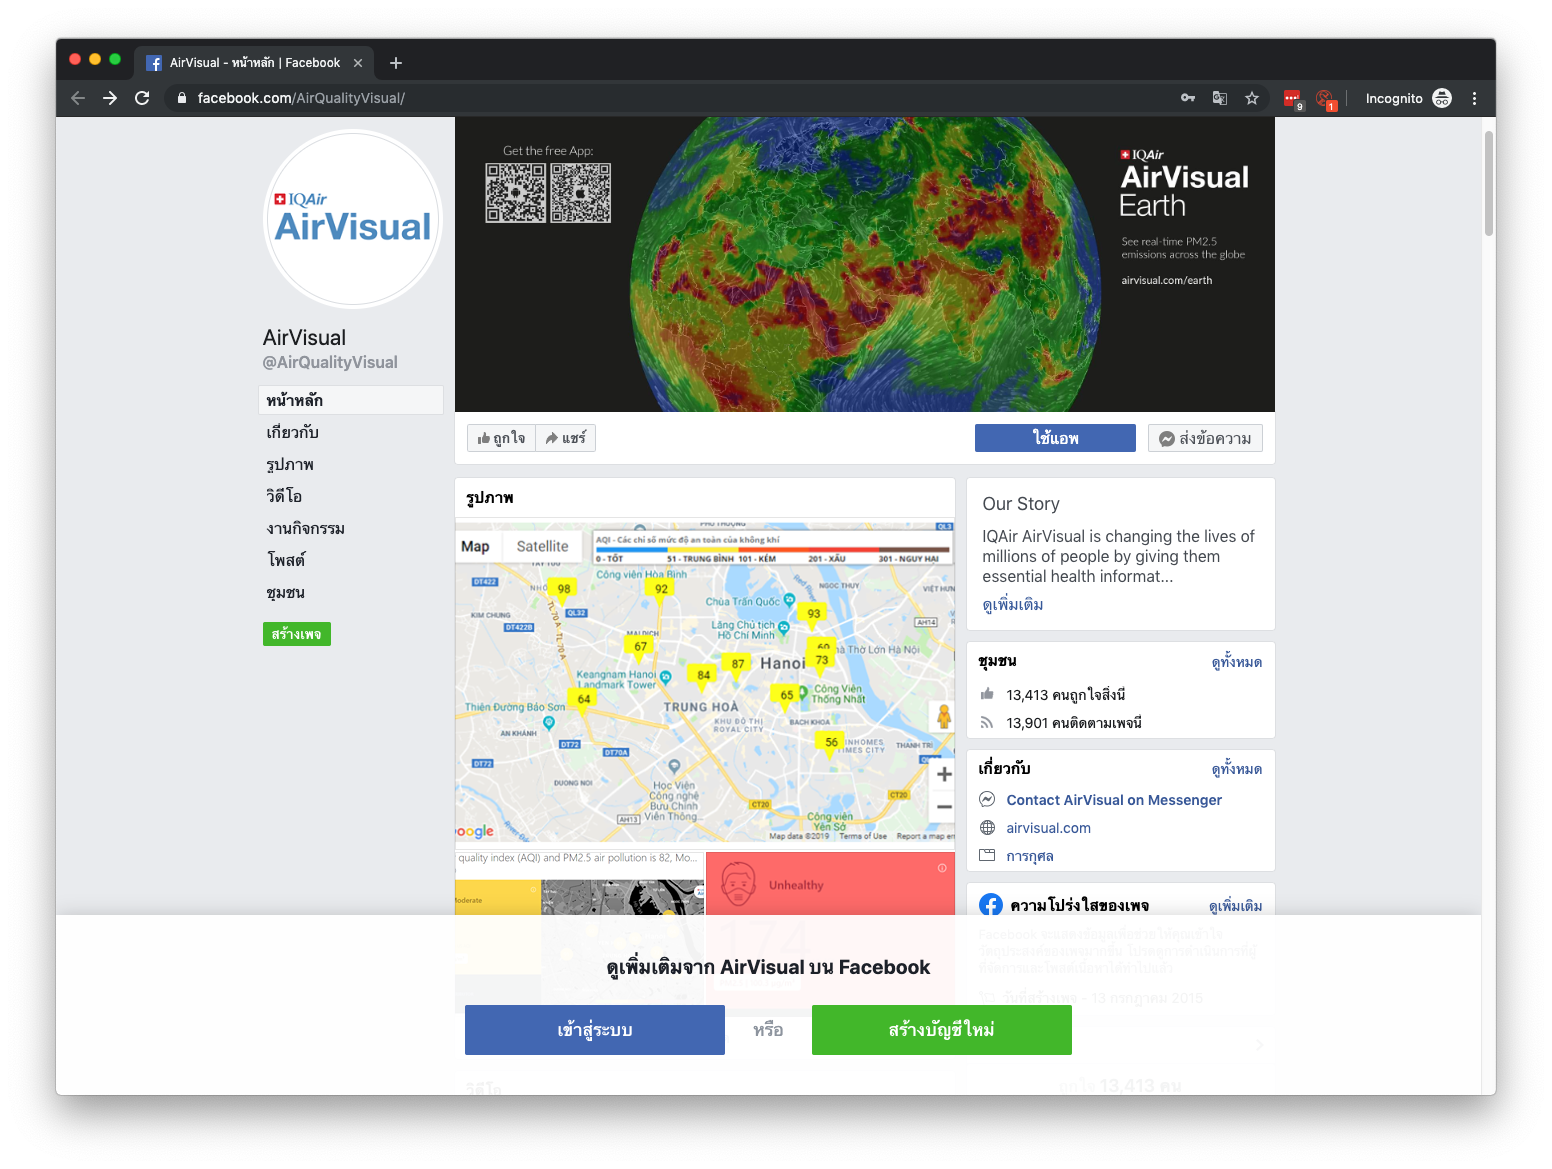 The Facebook page of AirVisual is accessible through a VPN connection from Thailand.